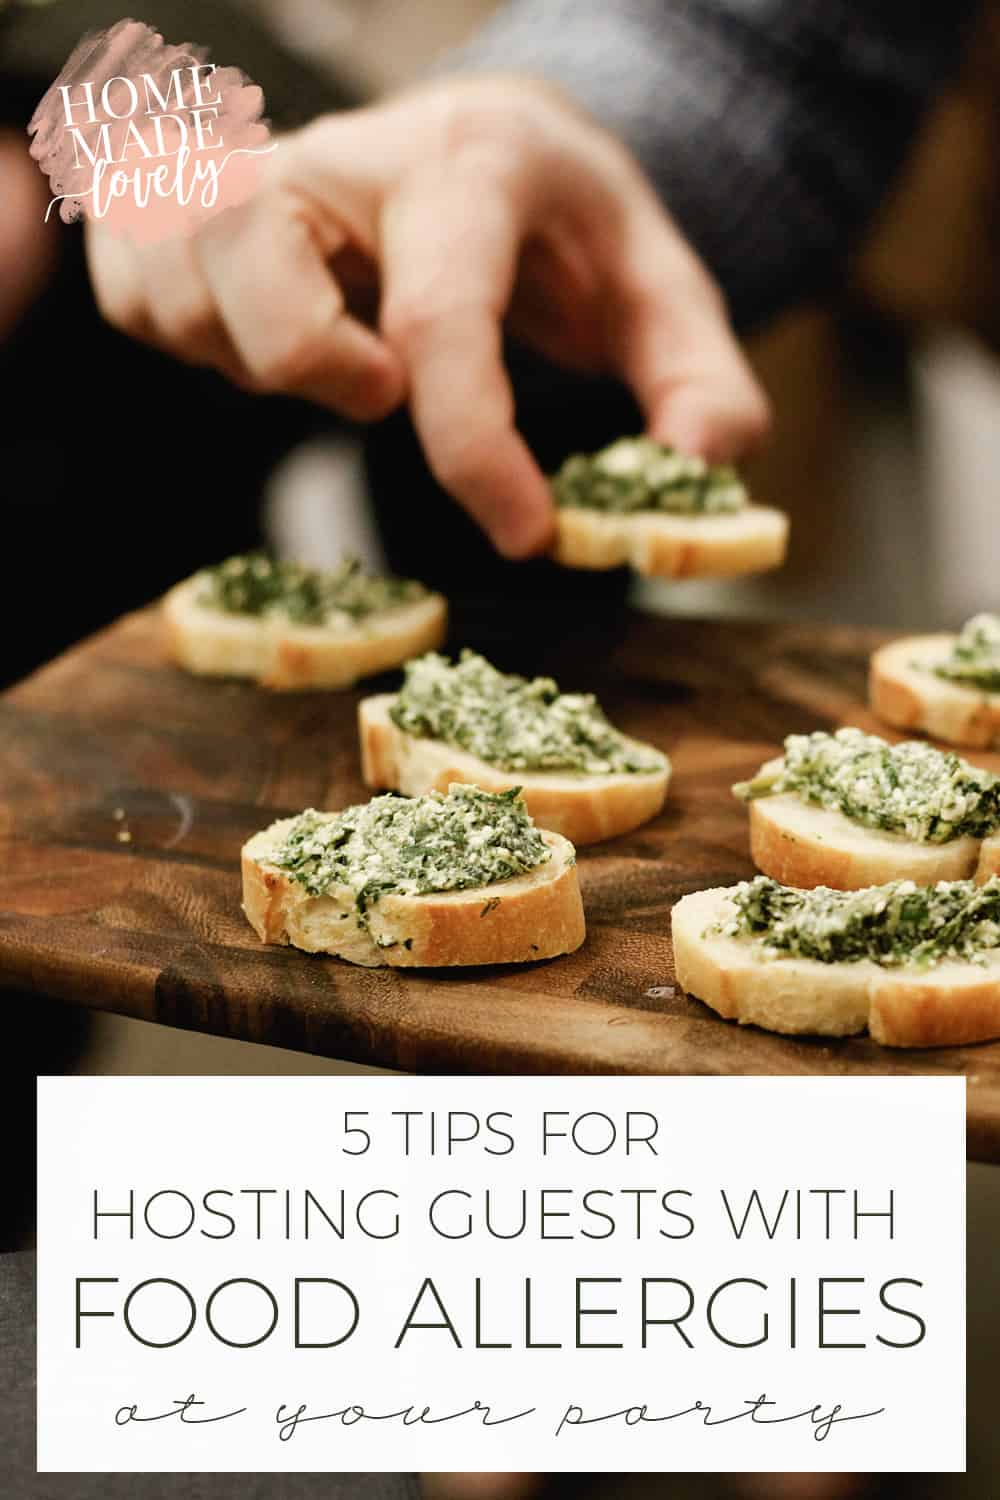 We have several food allergies, intolerances and sensitivities at our house, so we know first-hand about navigating parties.Follow these 5 tips for hosting guests with food allergies at your party, so they can have a great time!